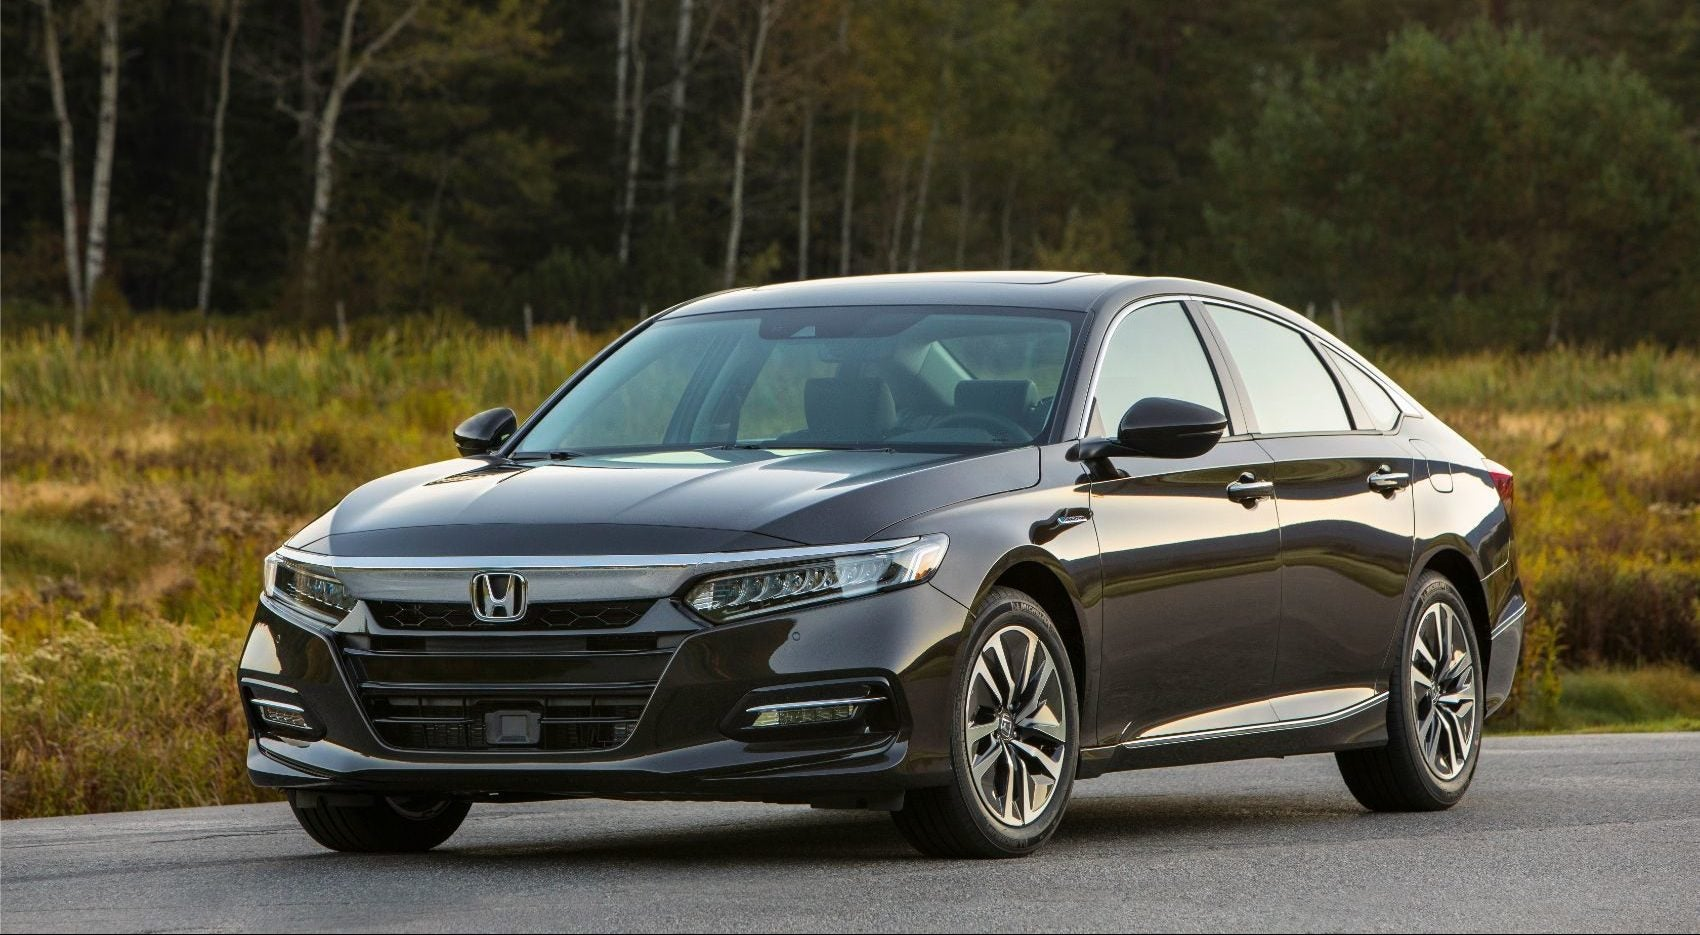 2020 Honda Accord Hybrid: A Brief But Detailed Walk Around